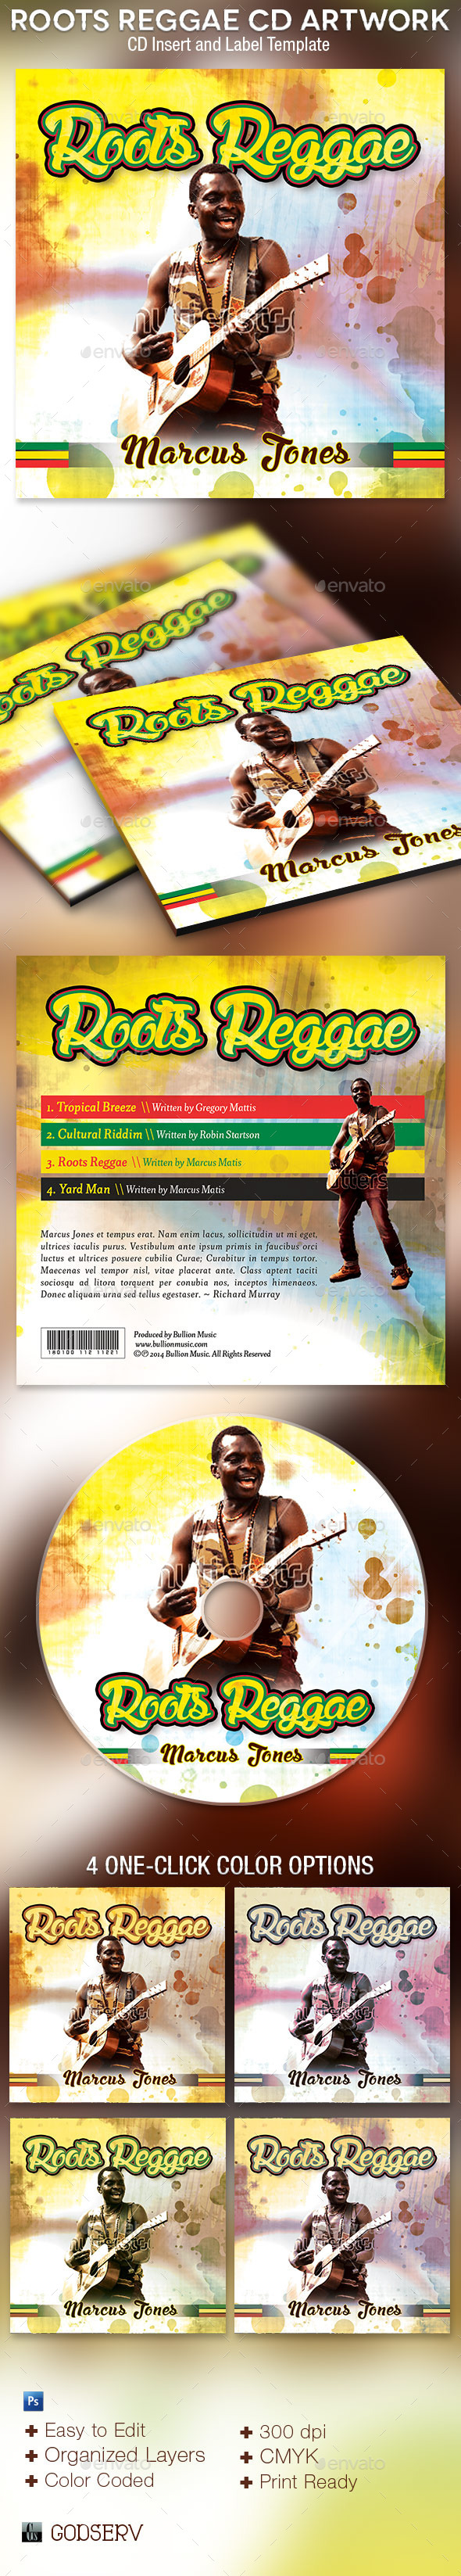 GraphicRiver Roots Reggae CD Artwork Photoshop Template 9179287